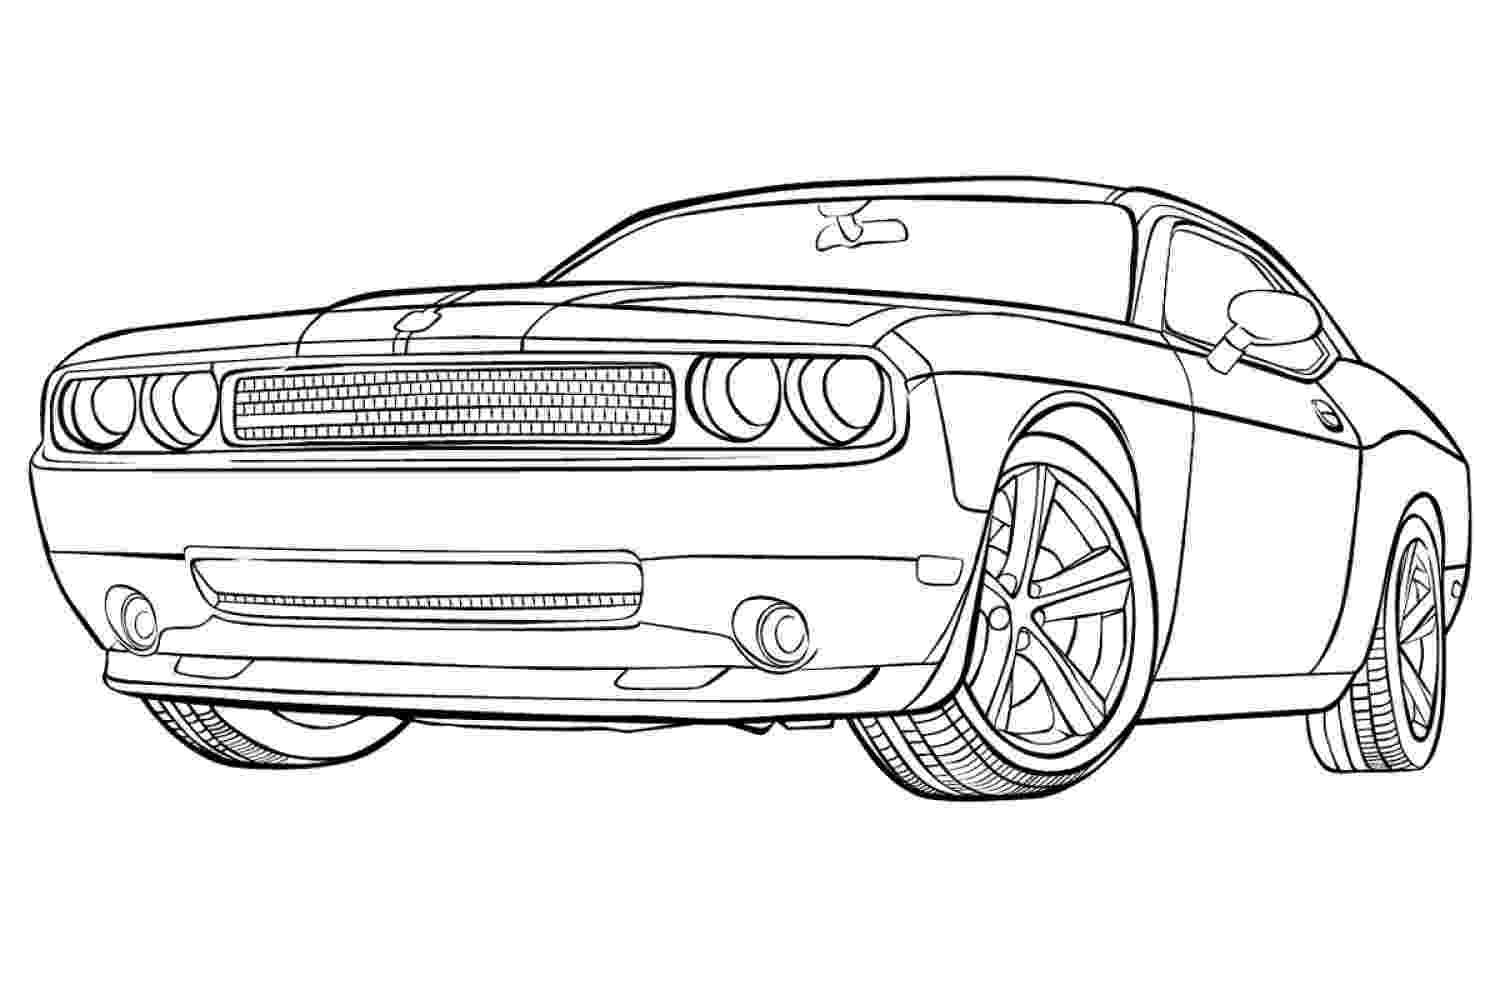 coloring pages muscle cars muscle car coloring pages to download and print for free muscle cars coloring pages